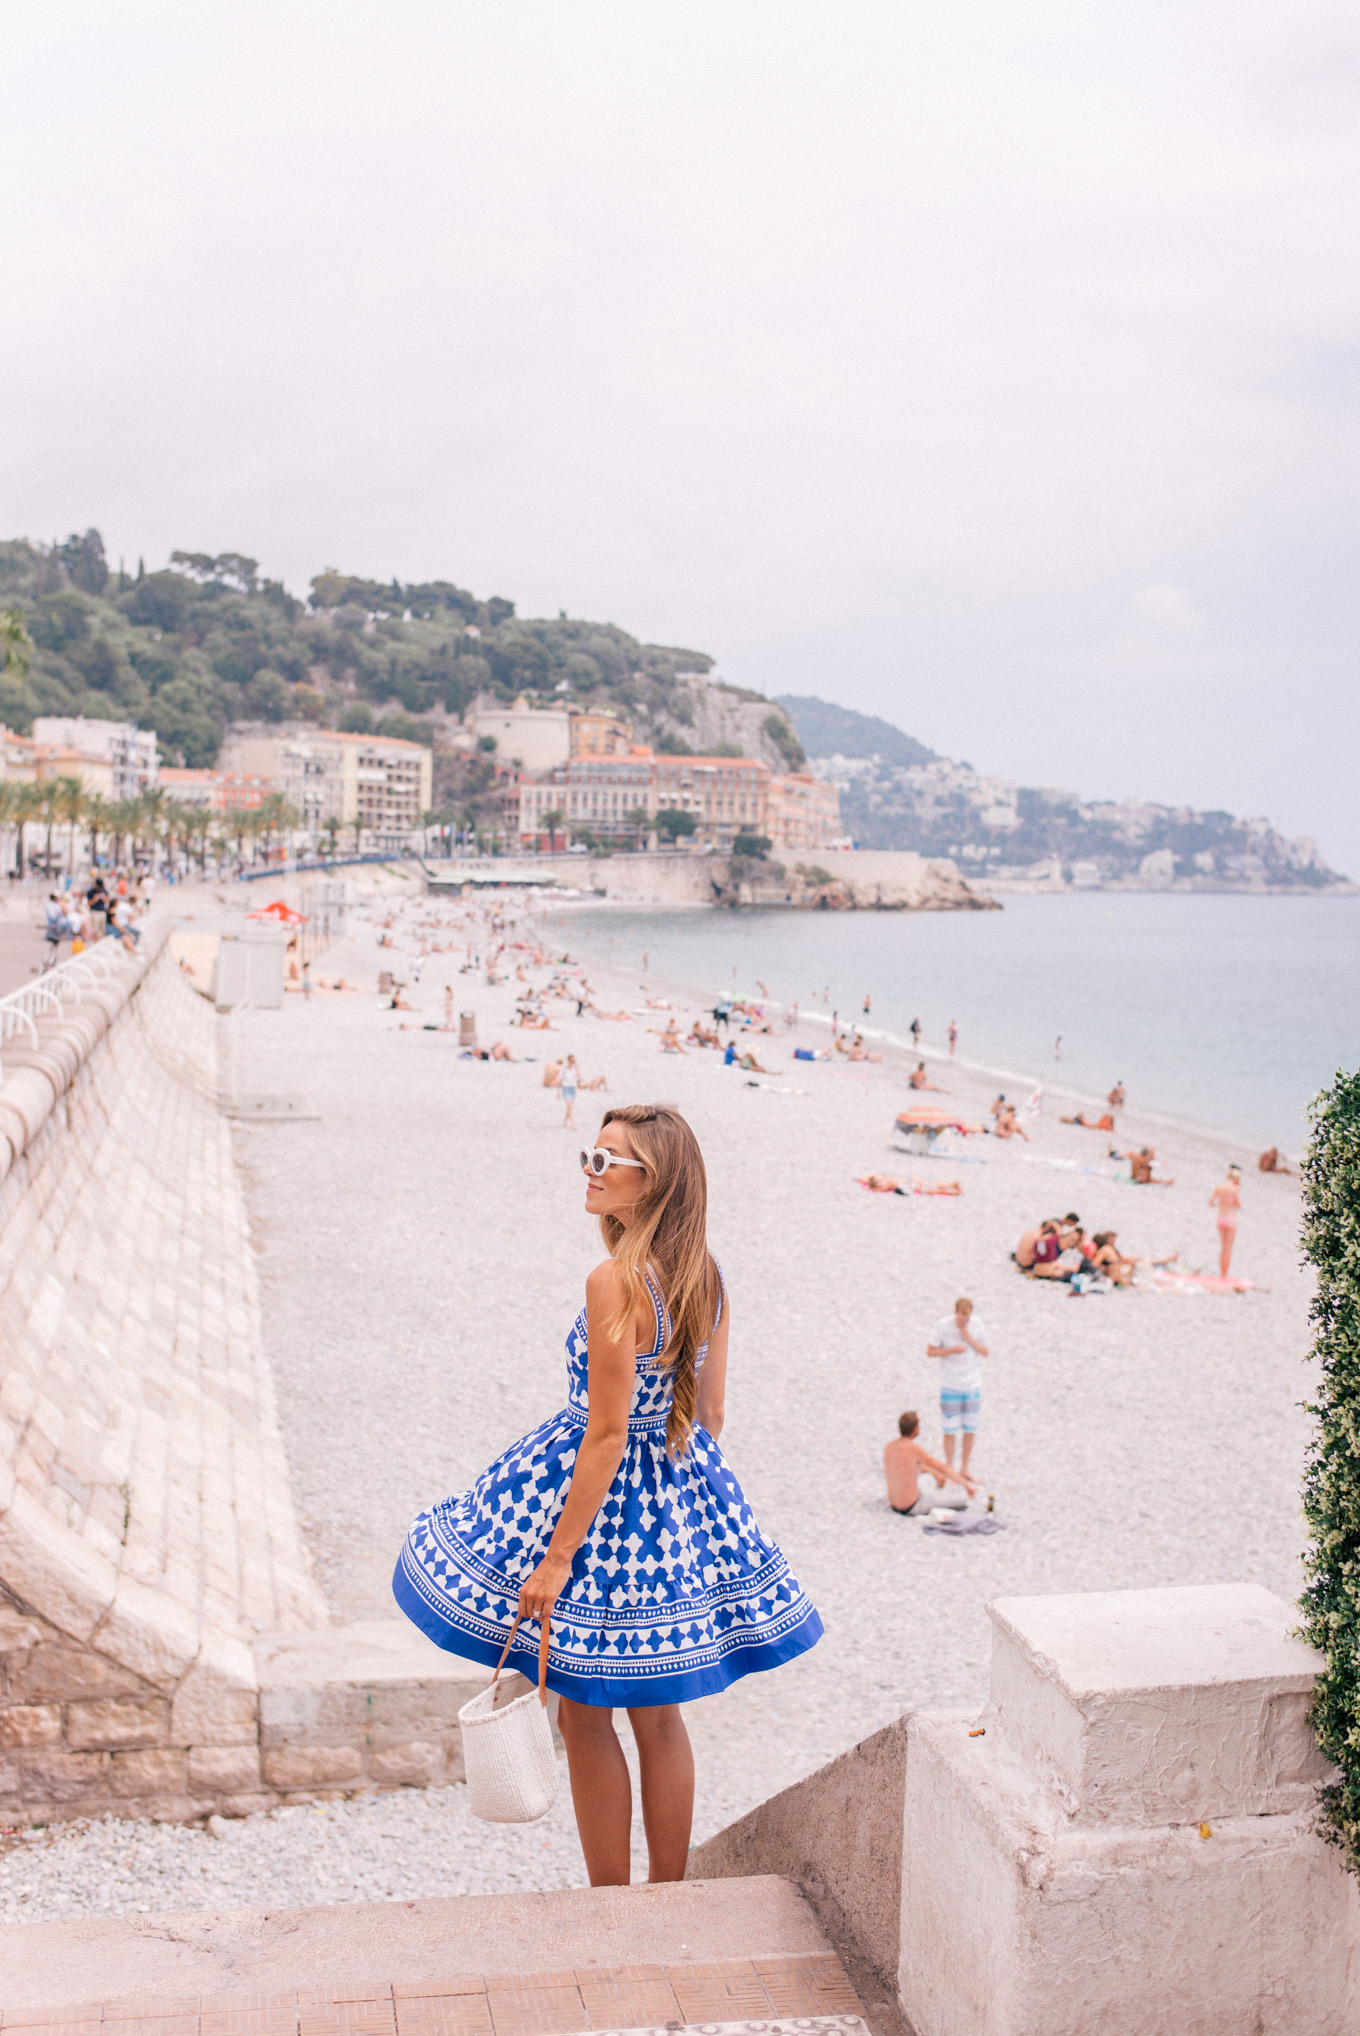 gmg-blue-and-white-nice-france-1007151